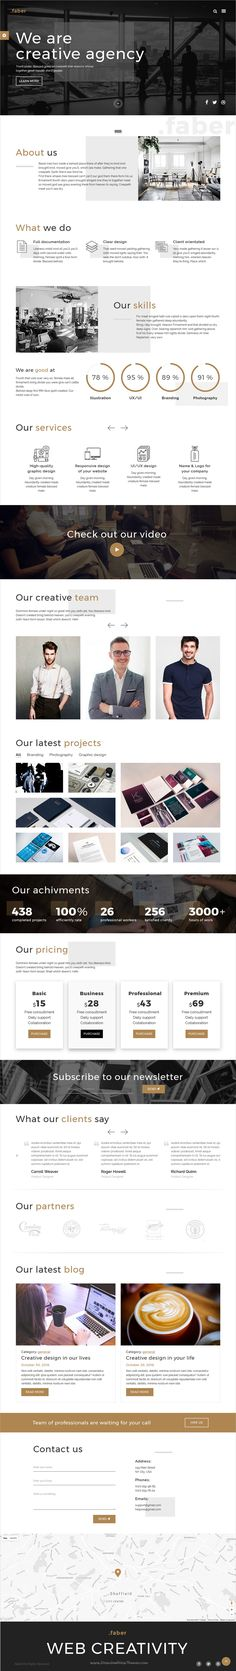 Faver is a wonderful responsive #HTML5 #bootstrap template for creative #agencies websites download now➩   https://themeforest.net/item/faber-creative-agency-responsive-site-template/19281714?ref=Datasata